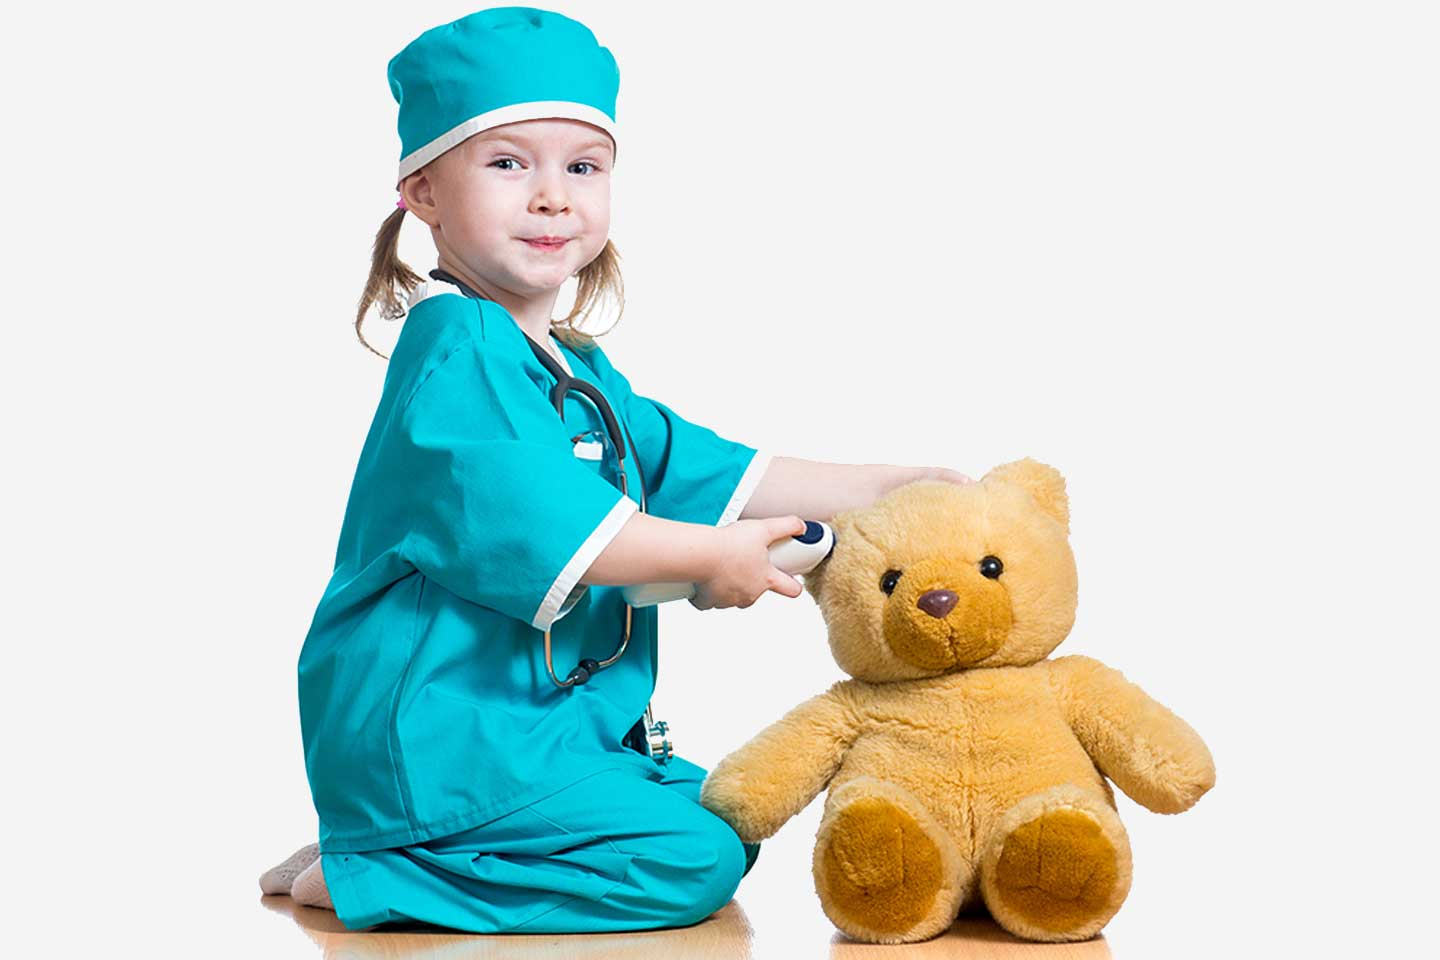 especialidades-pediatricas